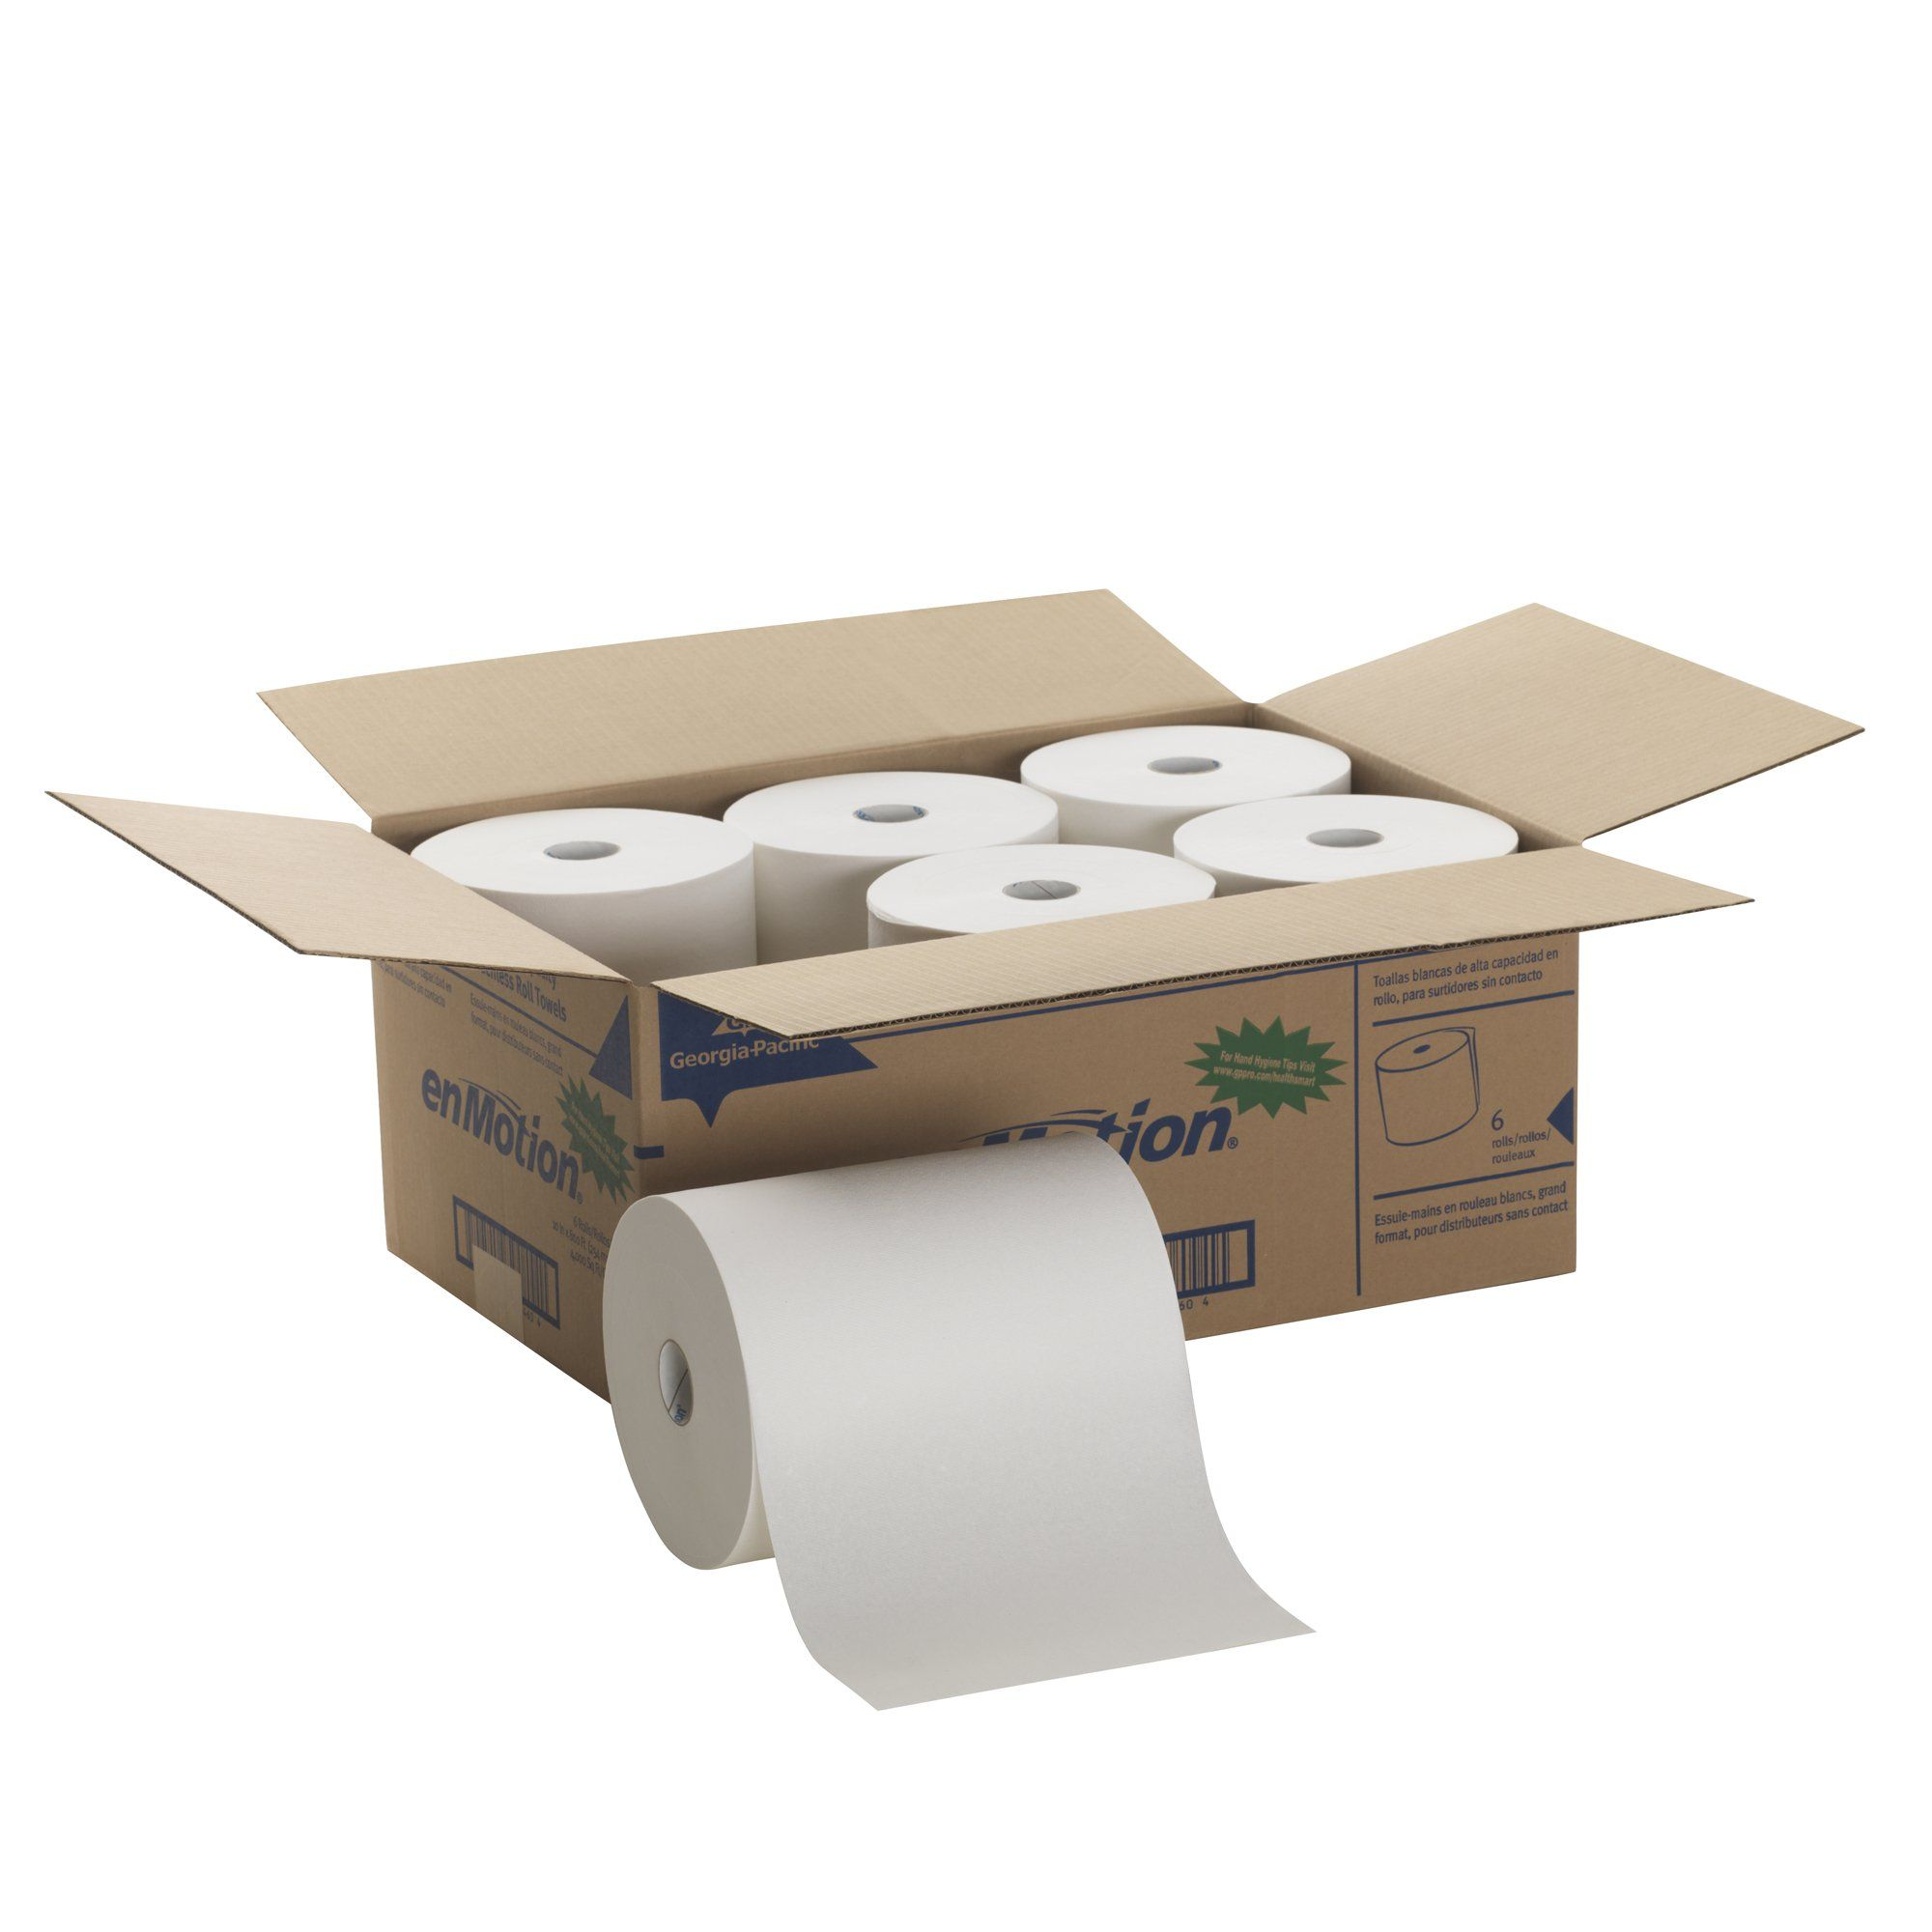 Georgiapacific Enmotion 89460 800 Length X 10 Width White High Capacity Touchless Roll Towel Roll Of 6 Rea Paper Towel Paper Towel Rolls How To Roll Towels